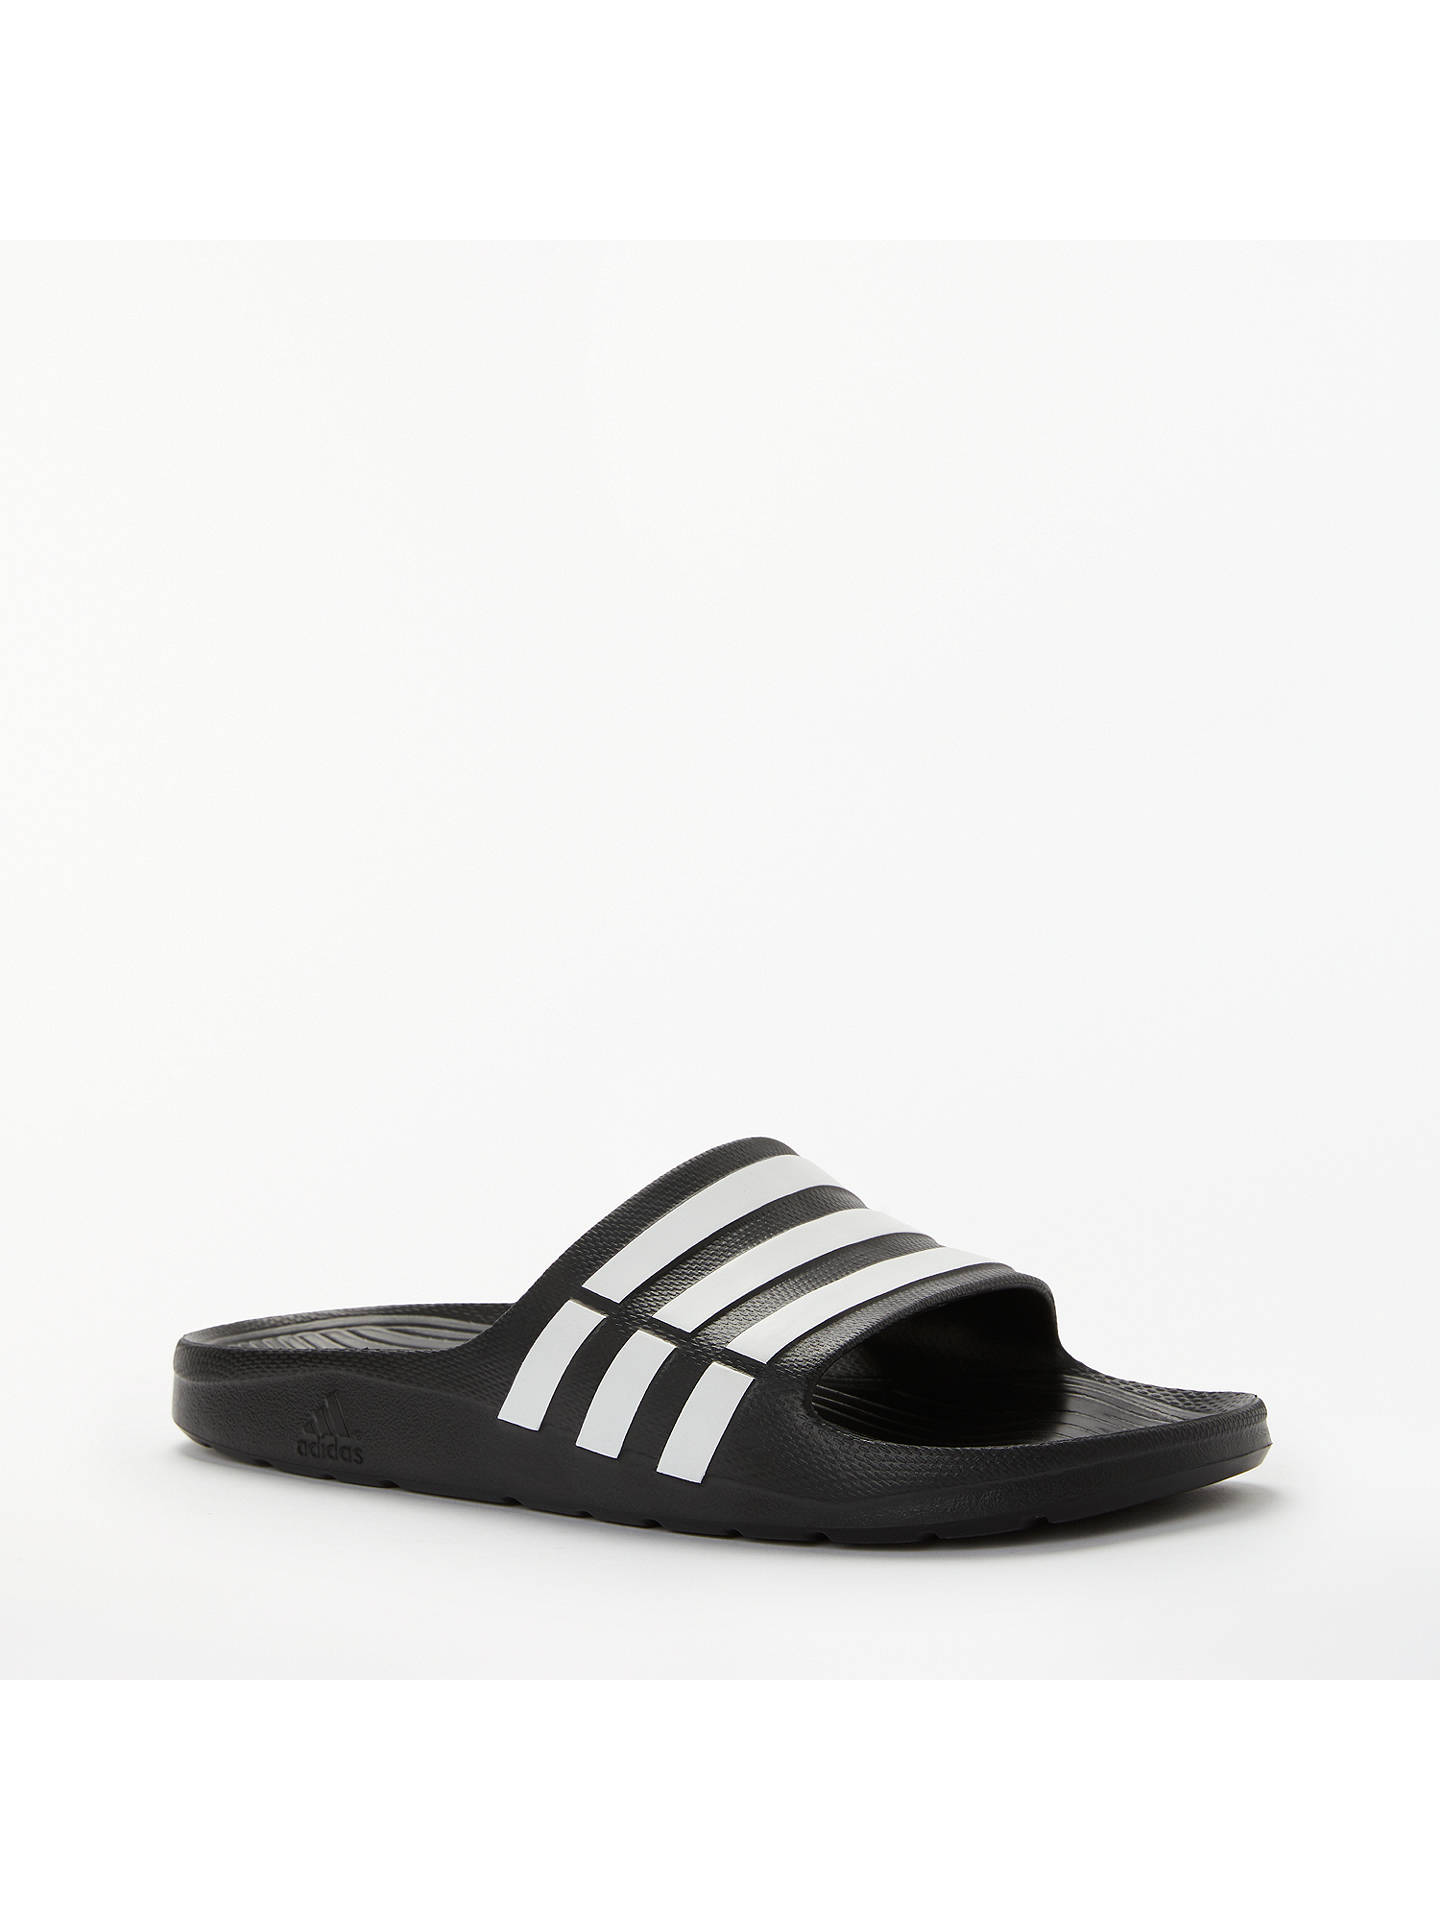 f5864011a adidas Duramo Slides Slippers at John Lewis   Partners